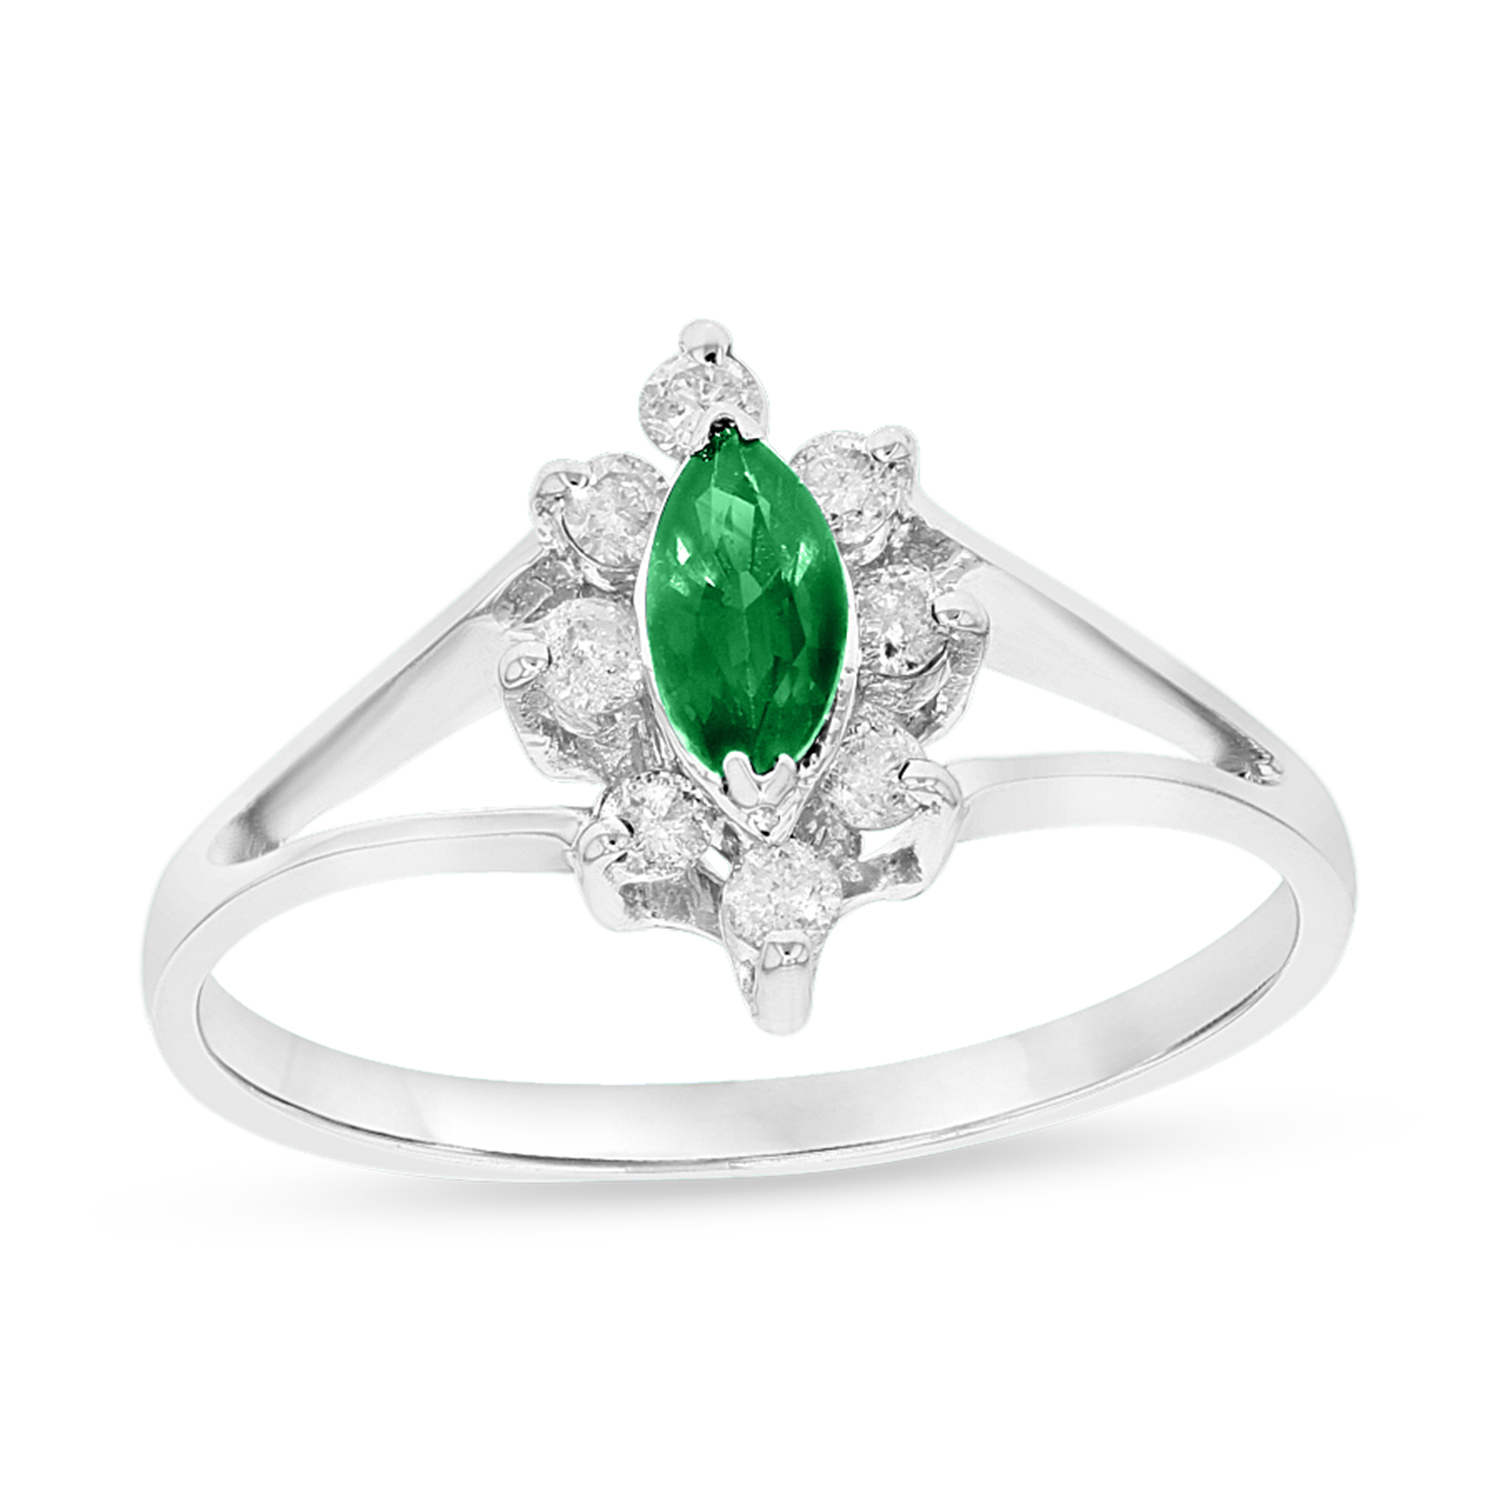 View 0.15ctw Diamond and Emerald Marquis Ring in 14k White Gold